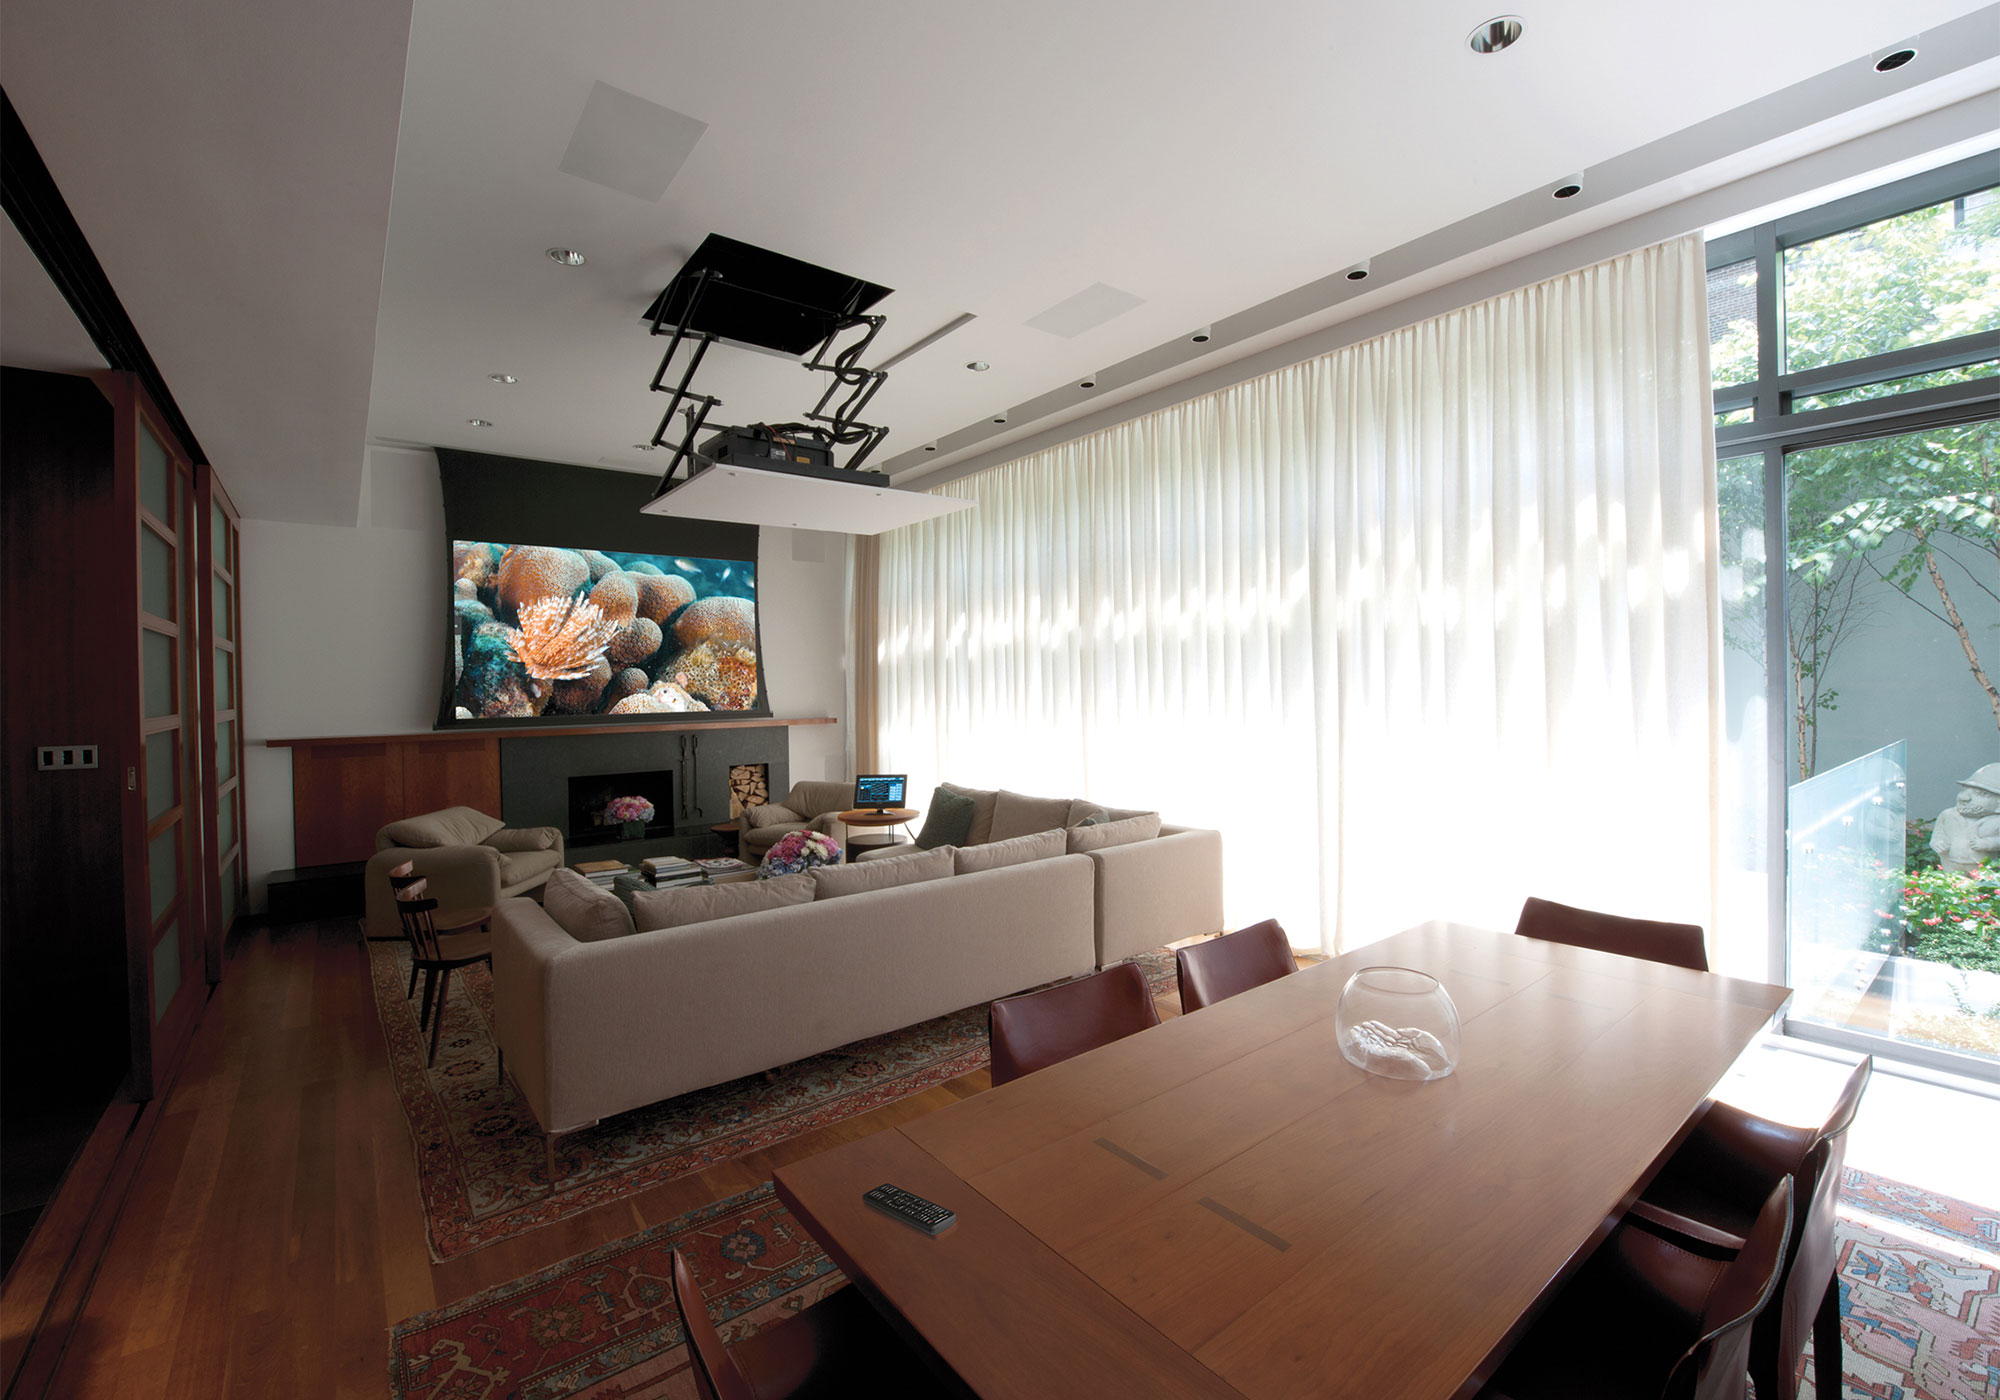 Living Room, media room, theater, projection system, movie screen, motorized, lift, draperies